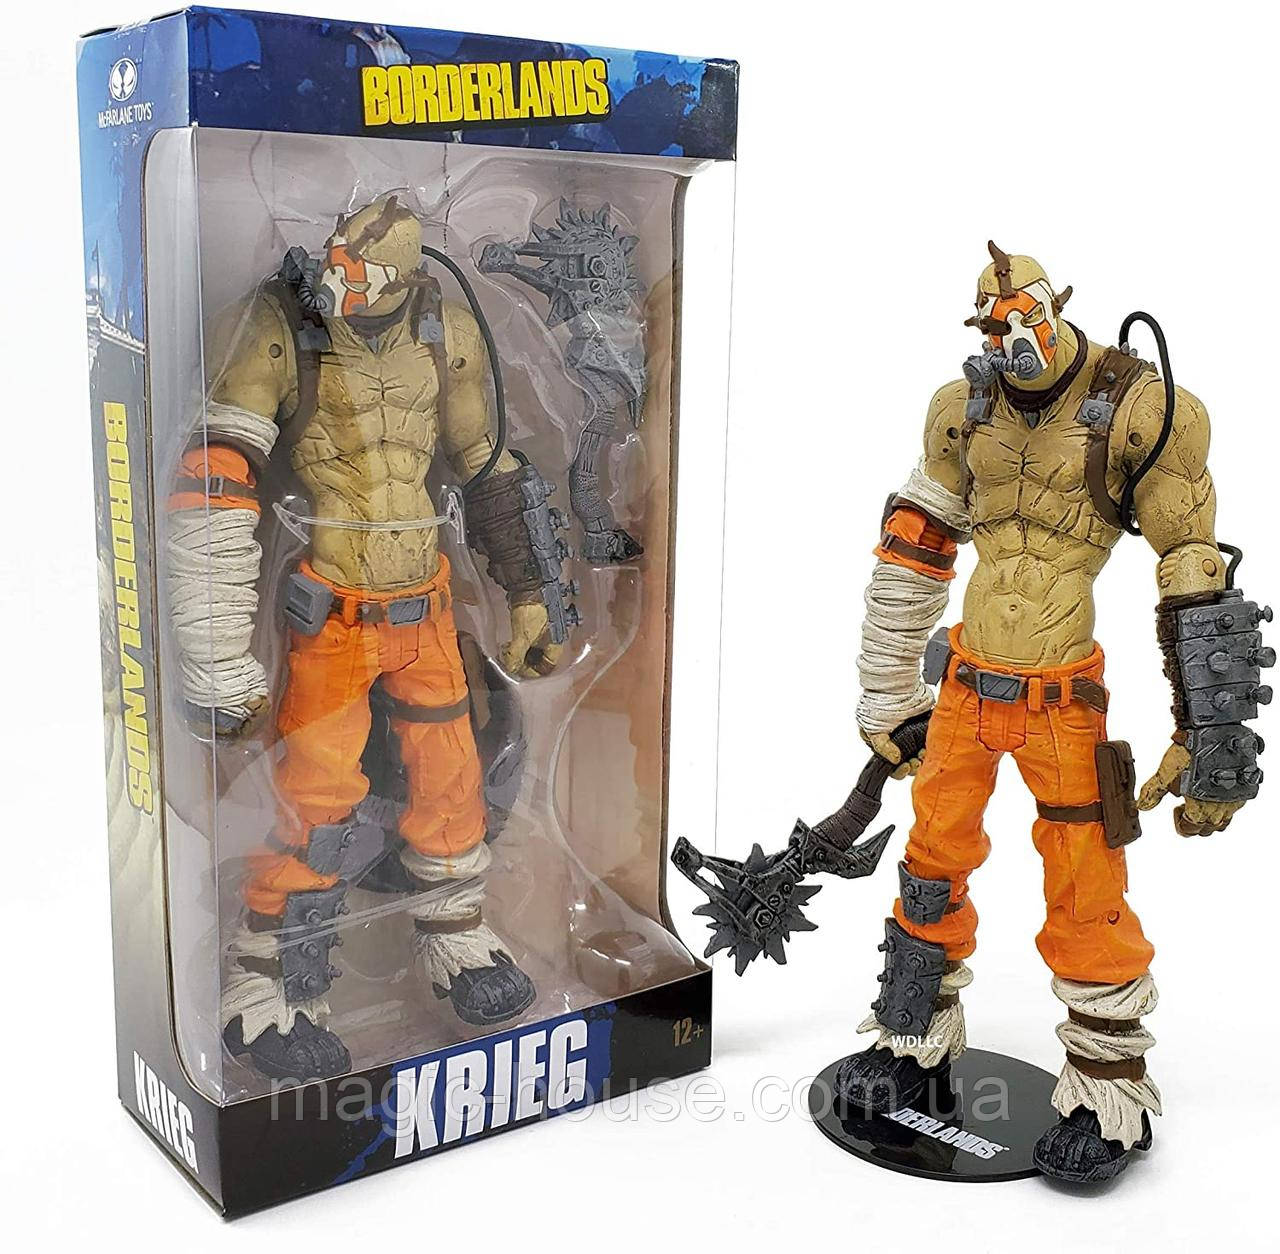 Фигурка бандита Крига McFarlane Toys Borderlands  Krieg Action Figure